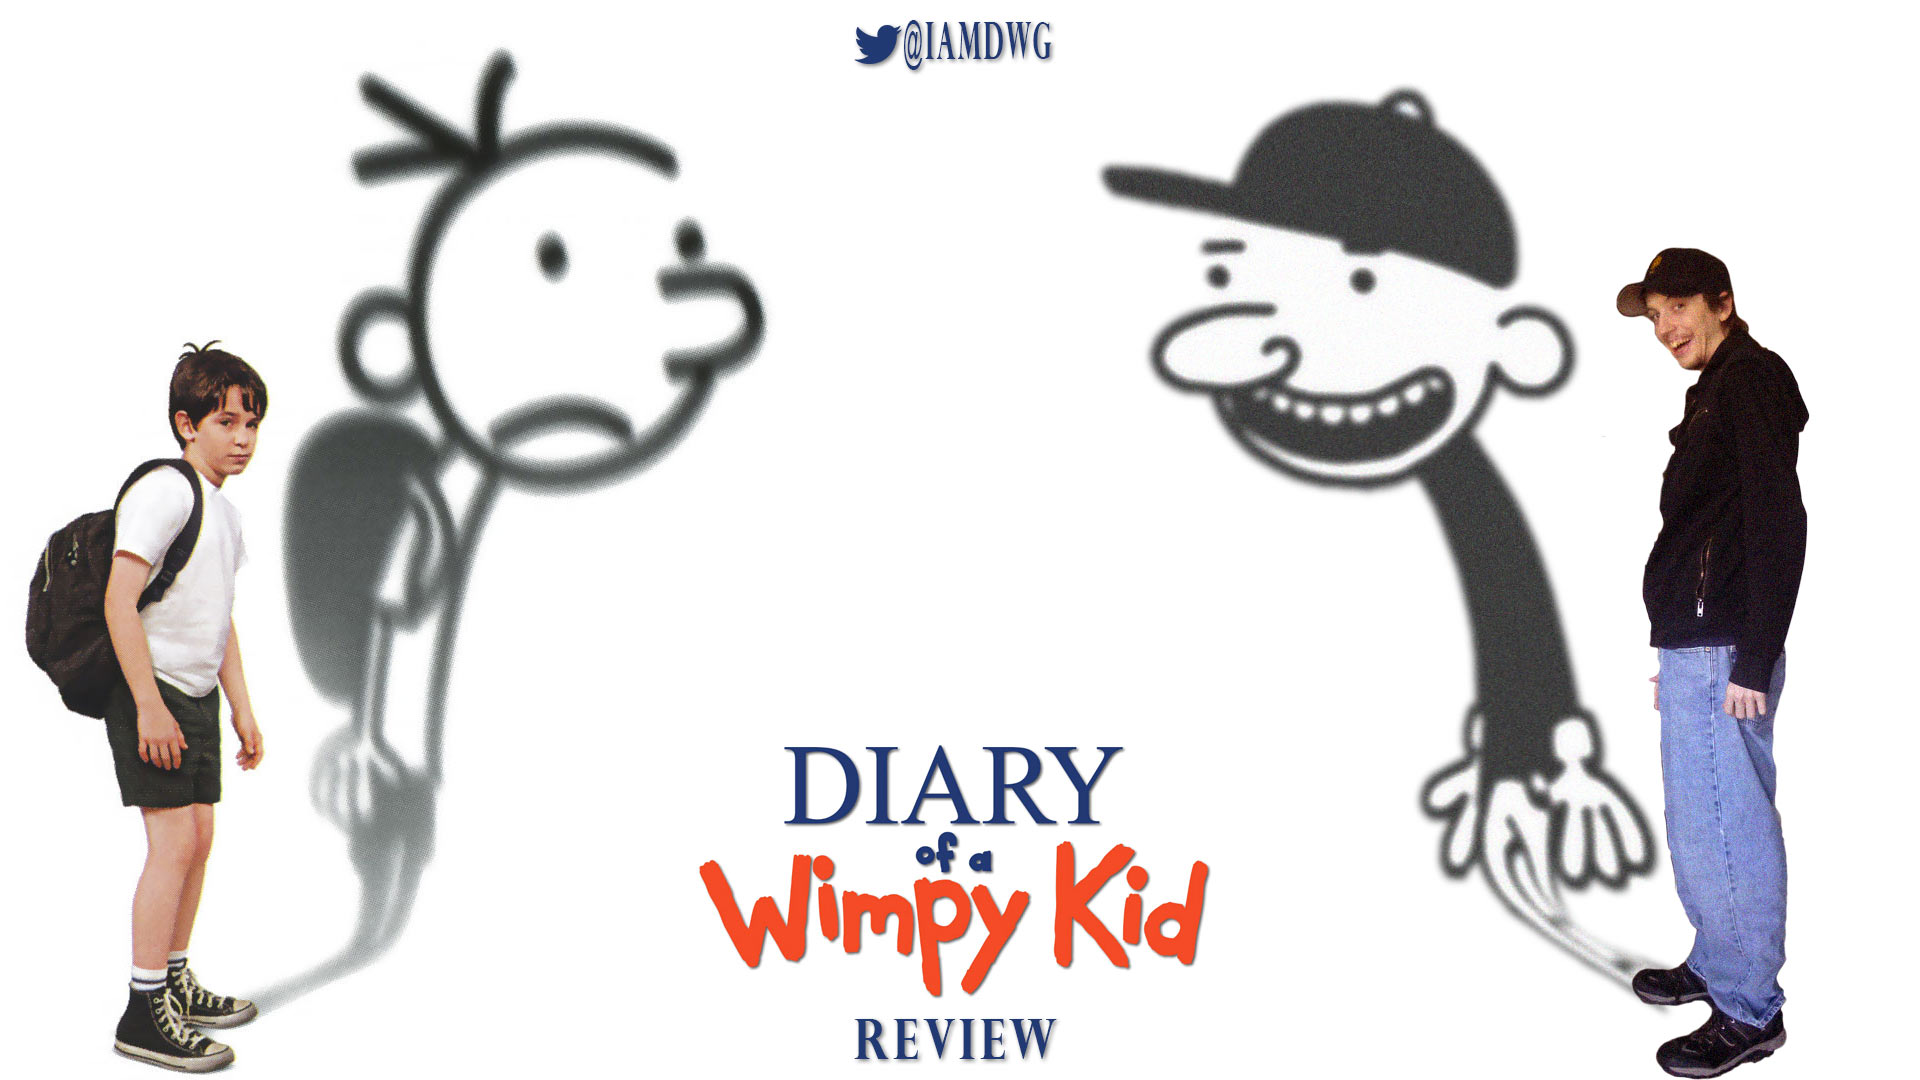 Who Is Diary Of A Wimpy Kid By